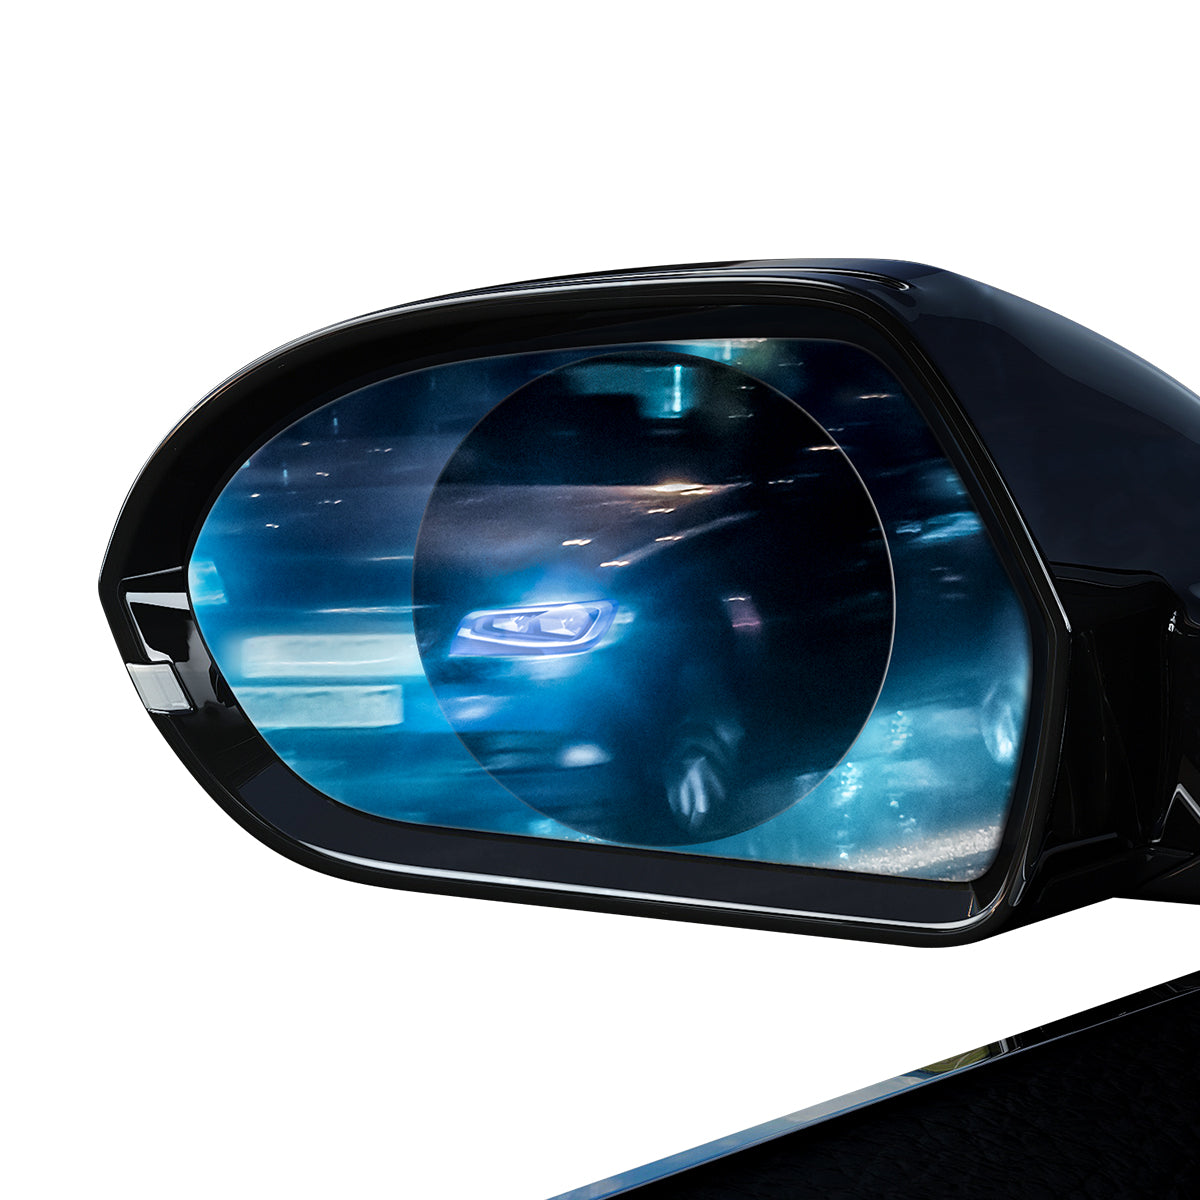 Baseus 0.15mm Rainproof Film for Car Rear-View Mirror (Round 2 pcs/pack 95*95mm)Transparent